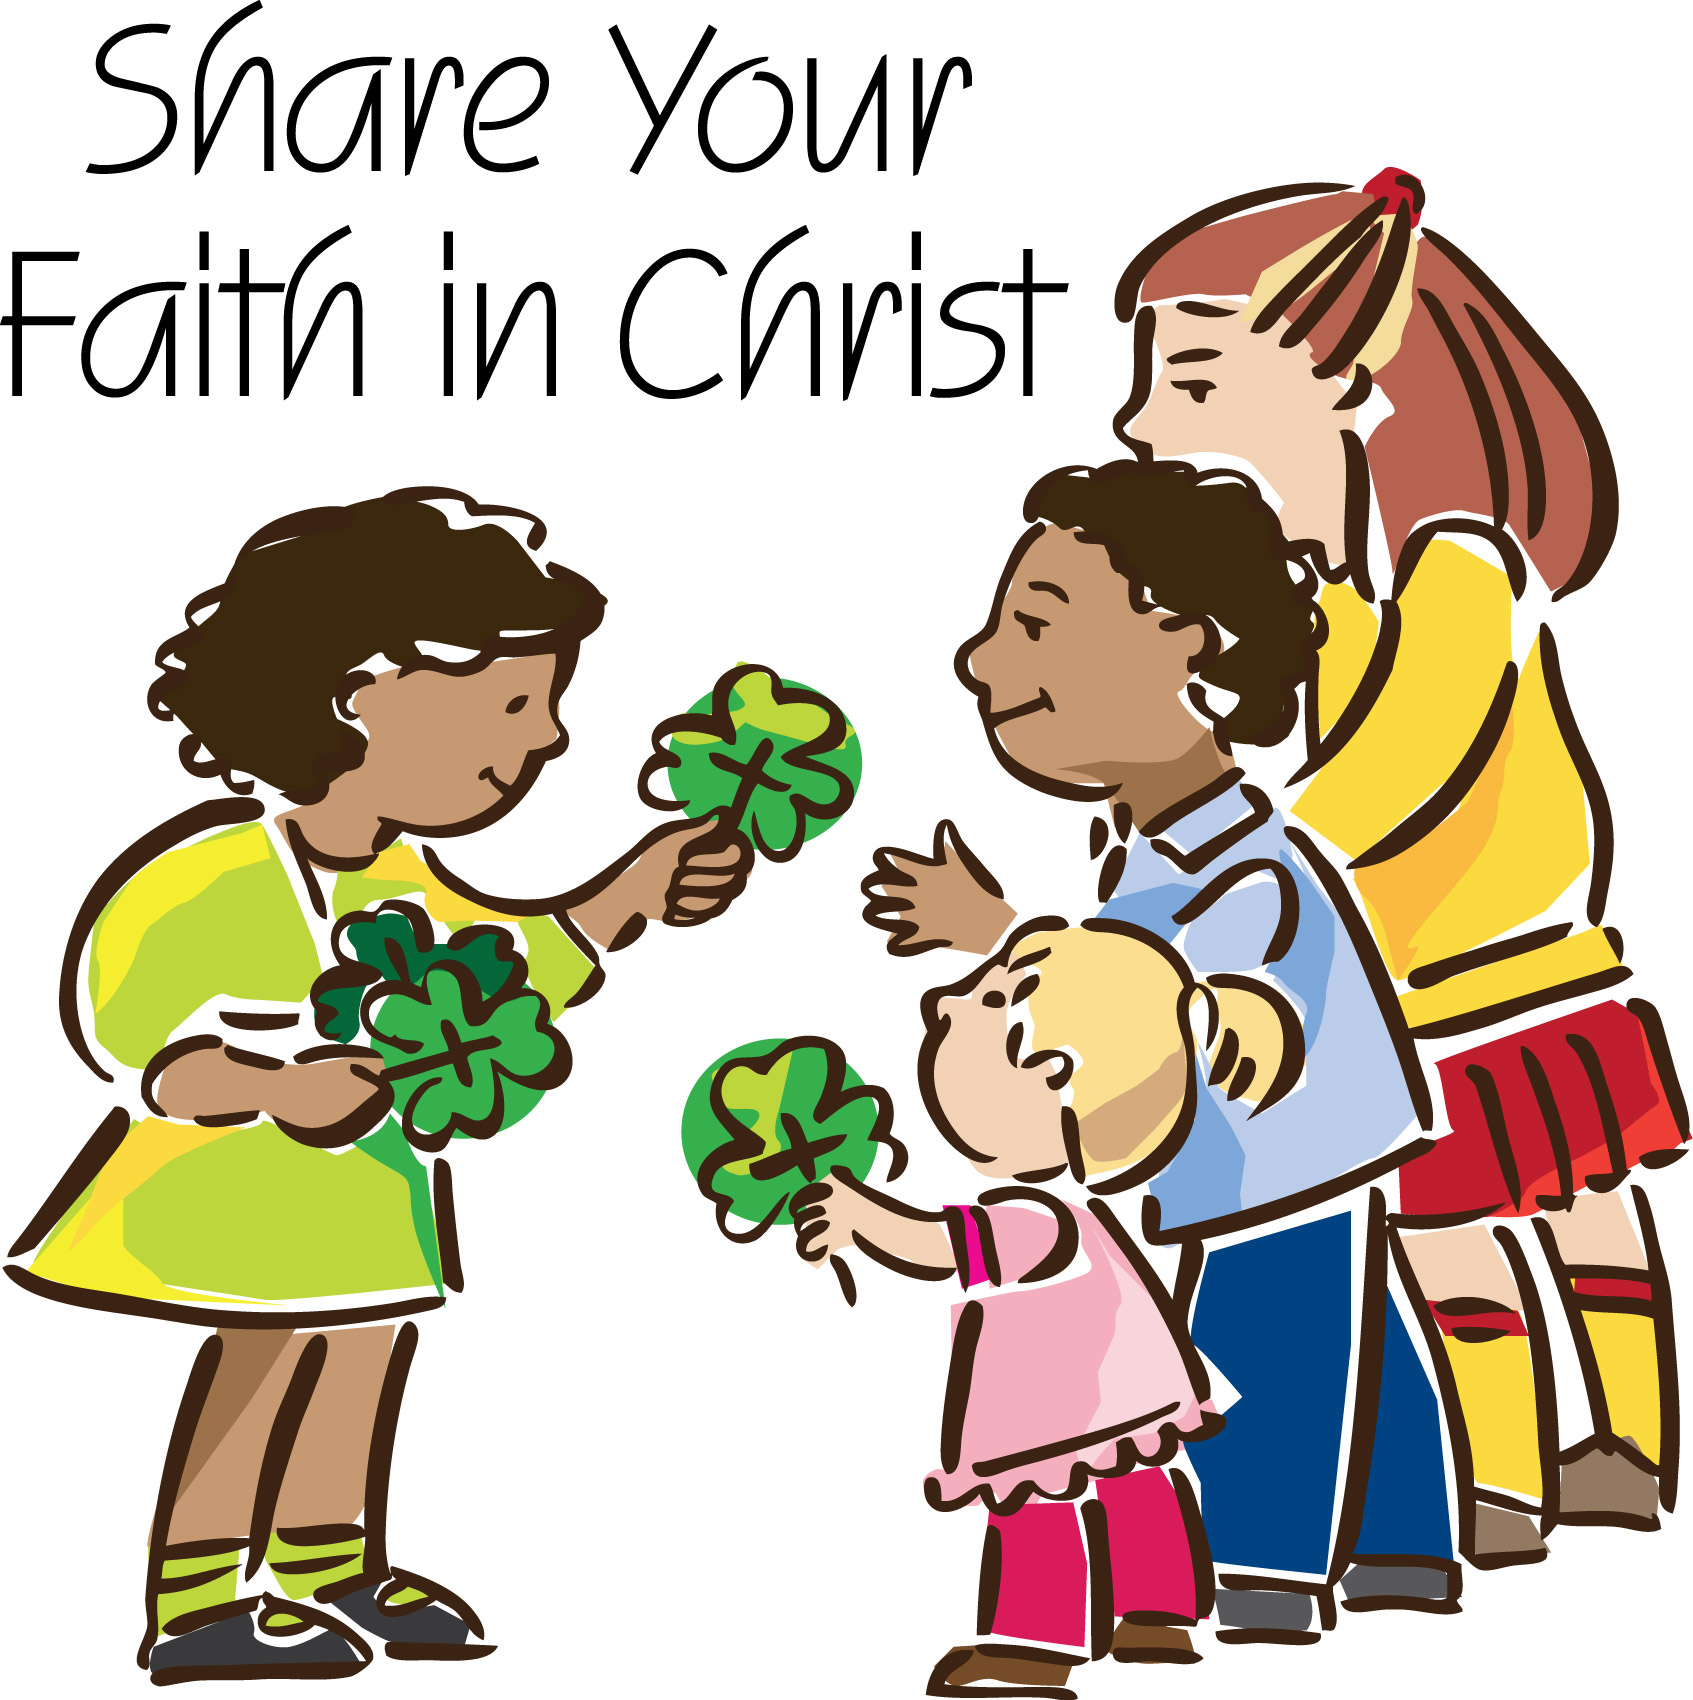 Sunday School Clip Art | Clipart library - Free Clipart Images